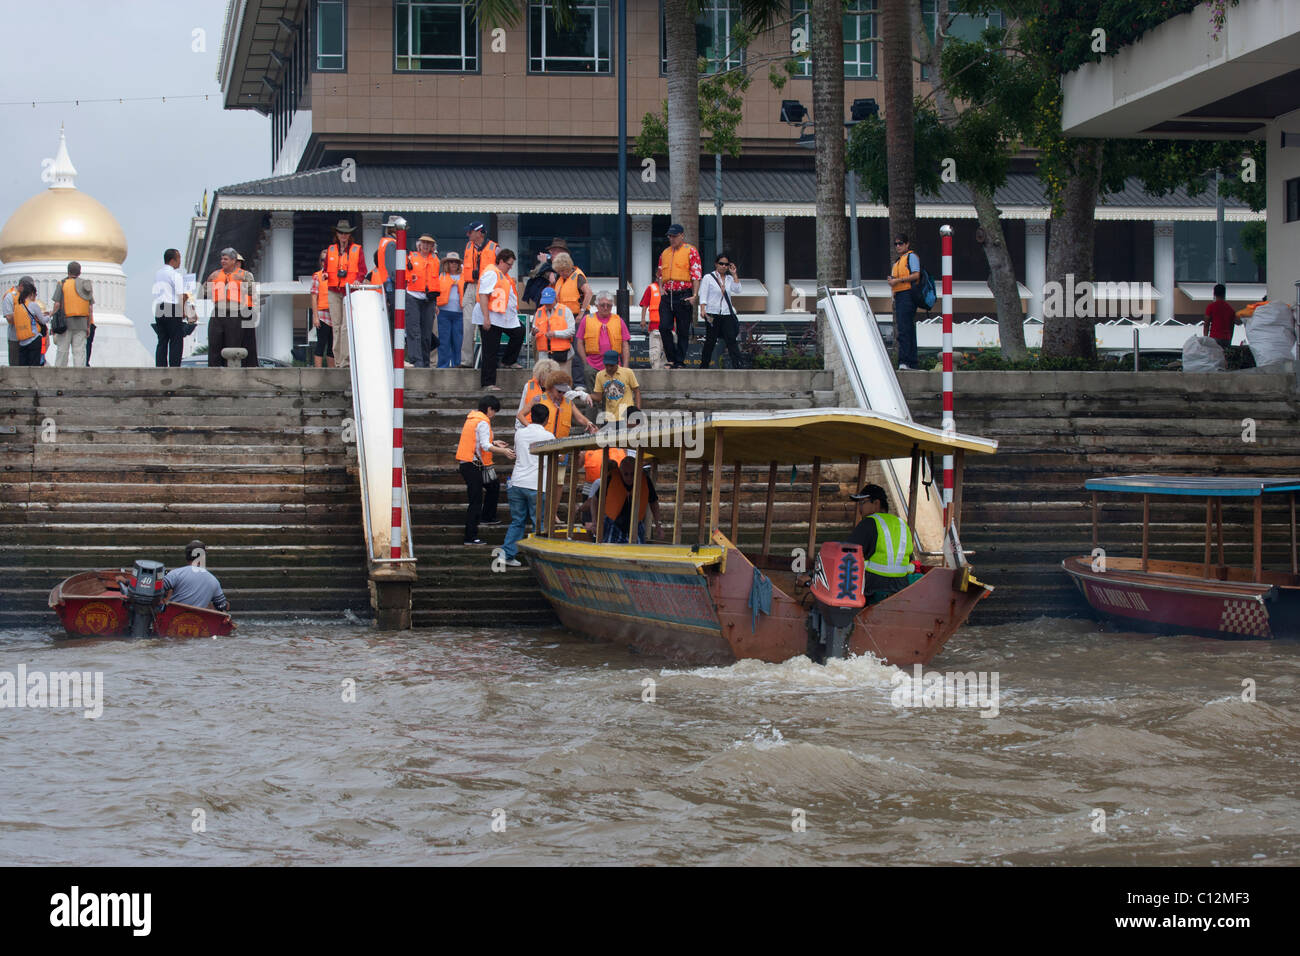 Tourists Boarding Boat on Brunei River - Stock Image